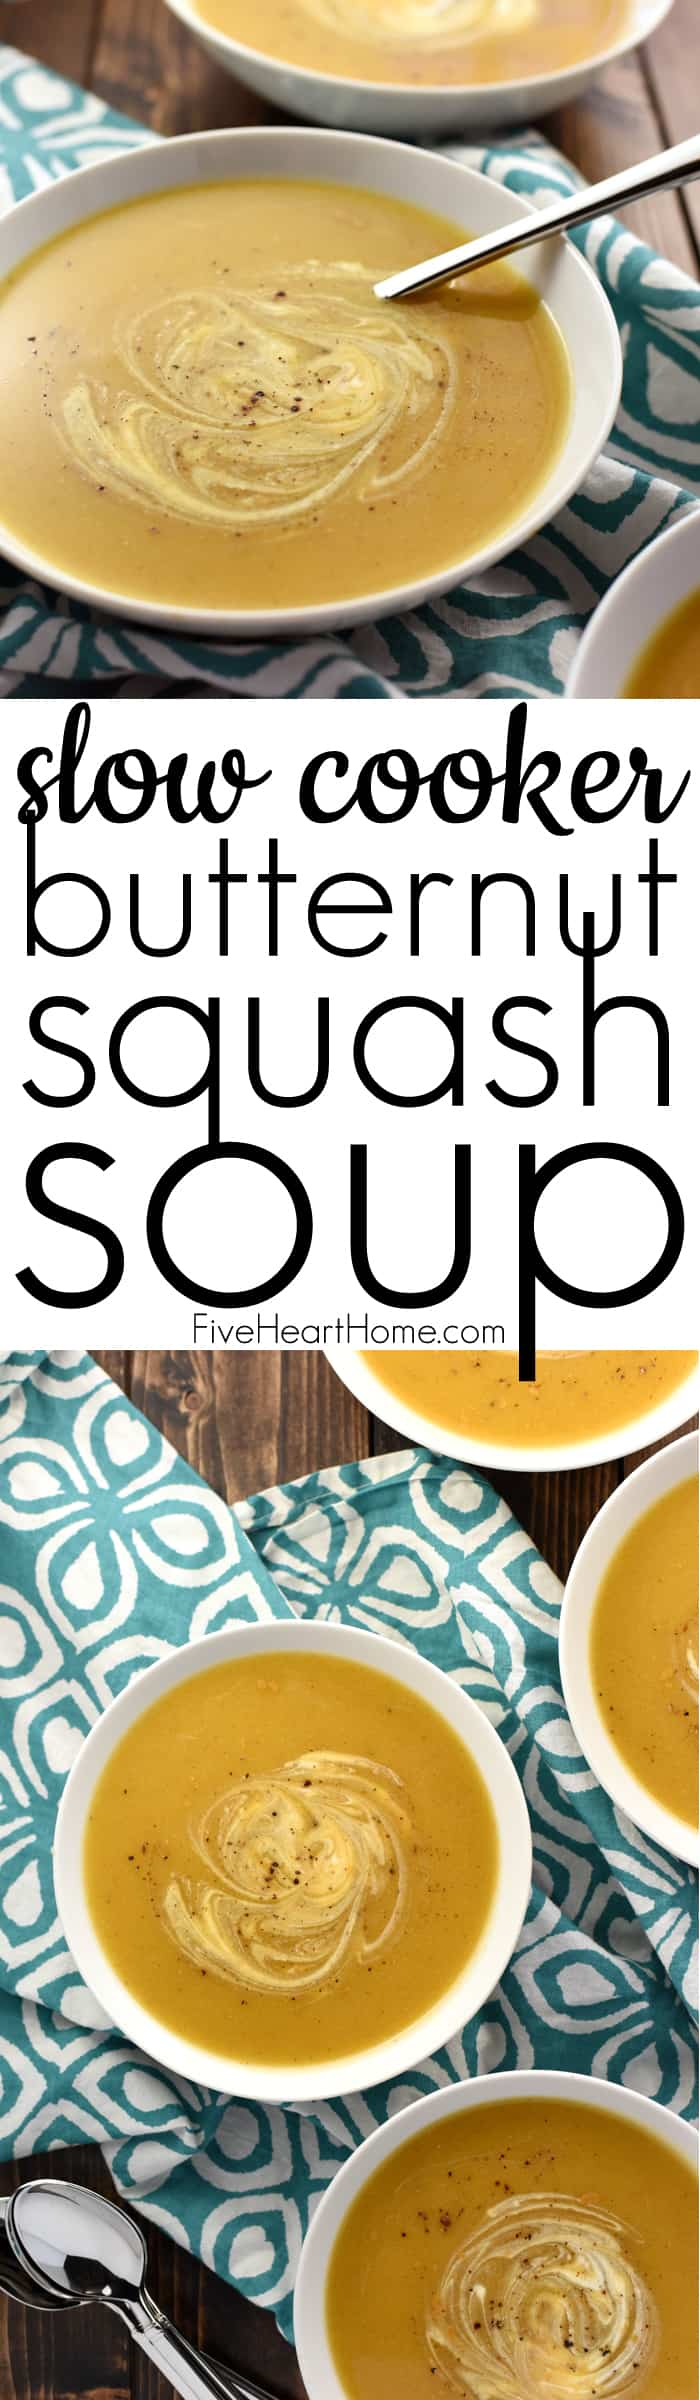 Slow Cooker Butternut Squash Soup ~ silky and delicious, packed with vitamins, and as effortless as tossing frozen butternut squash cubes into the crock pot! | FiveHeartHome.com